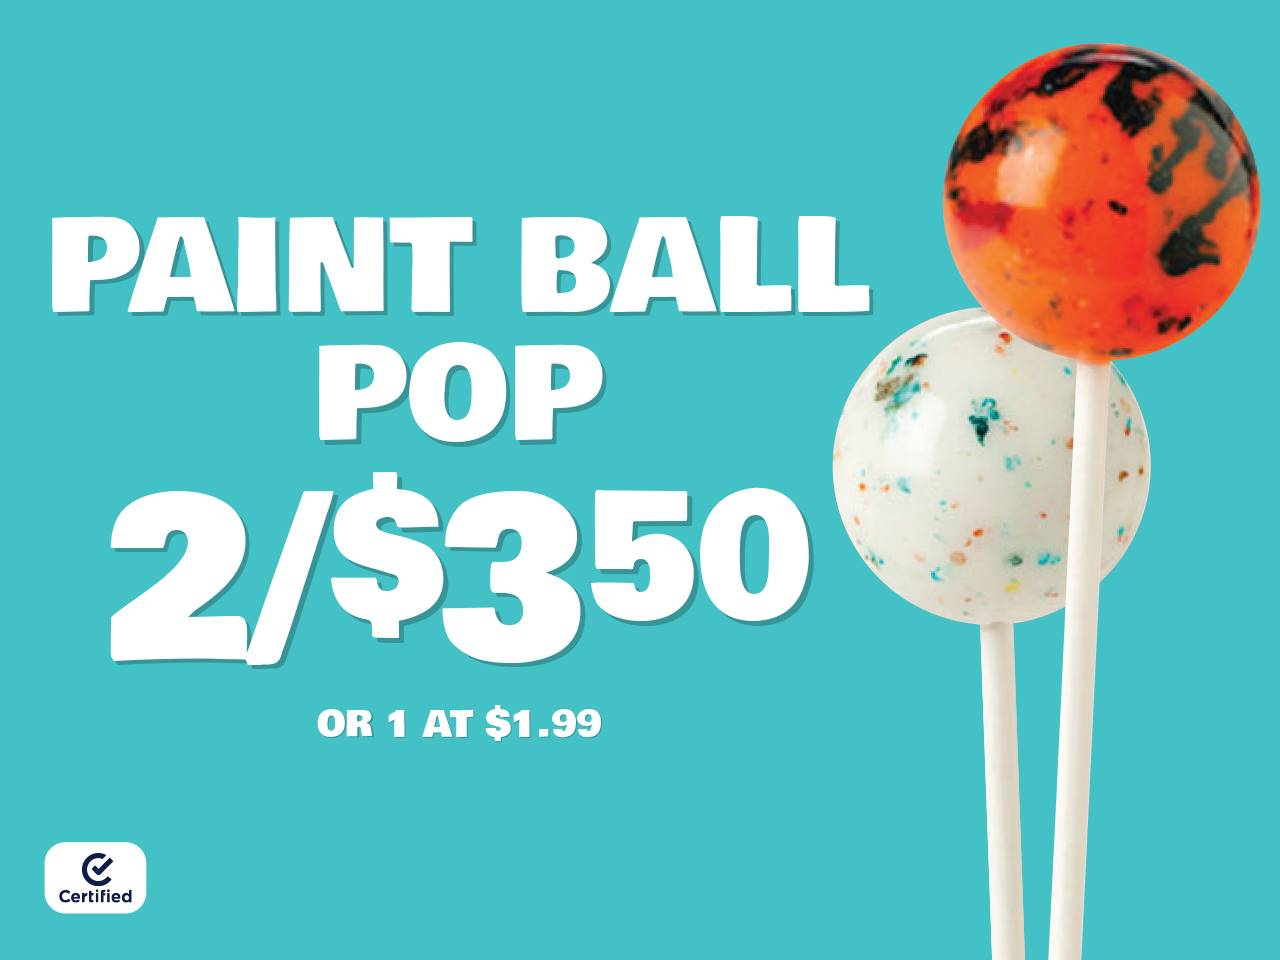 Paint Ball Pop 2 for $3.50 or 1 at $1.99